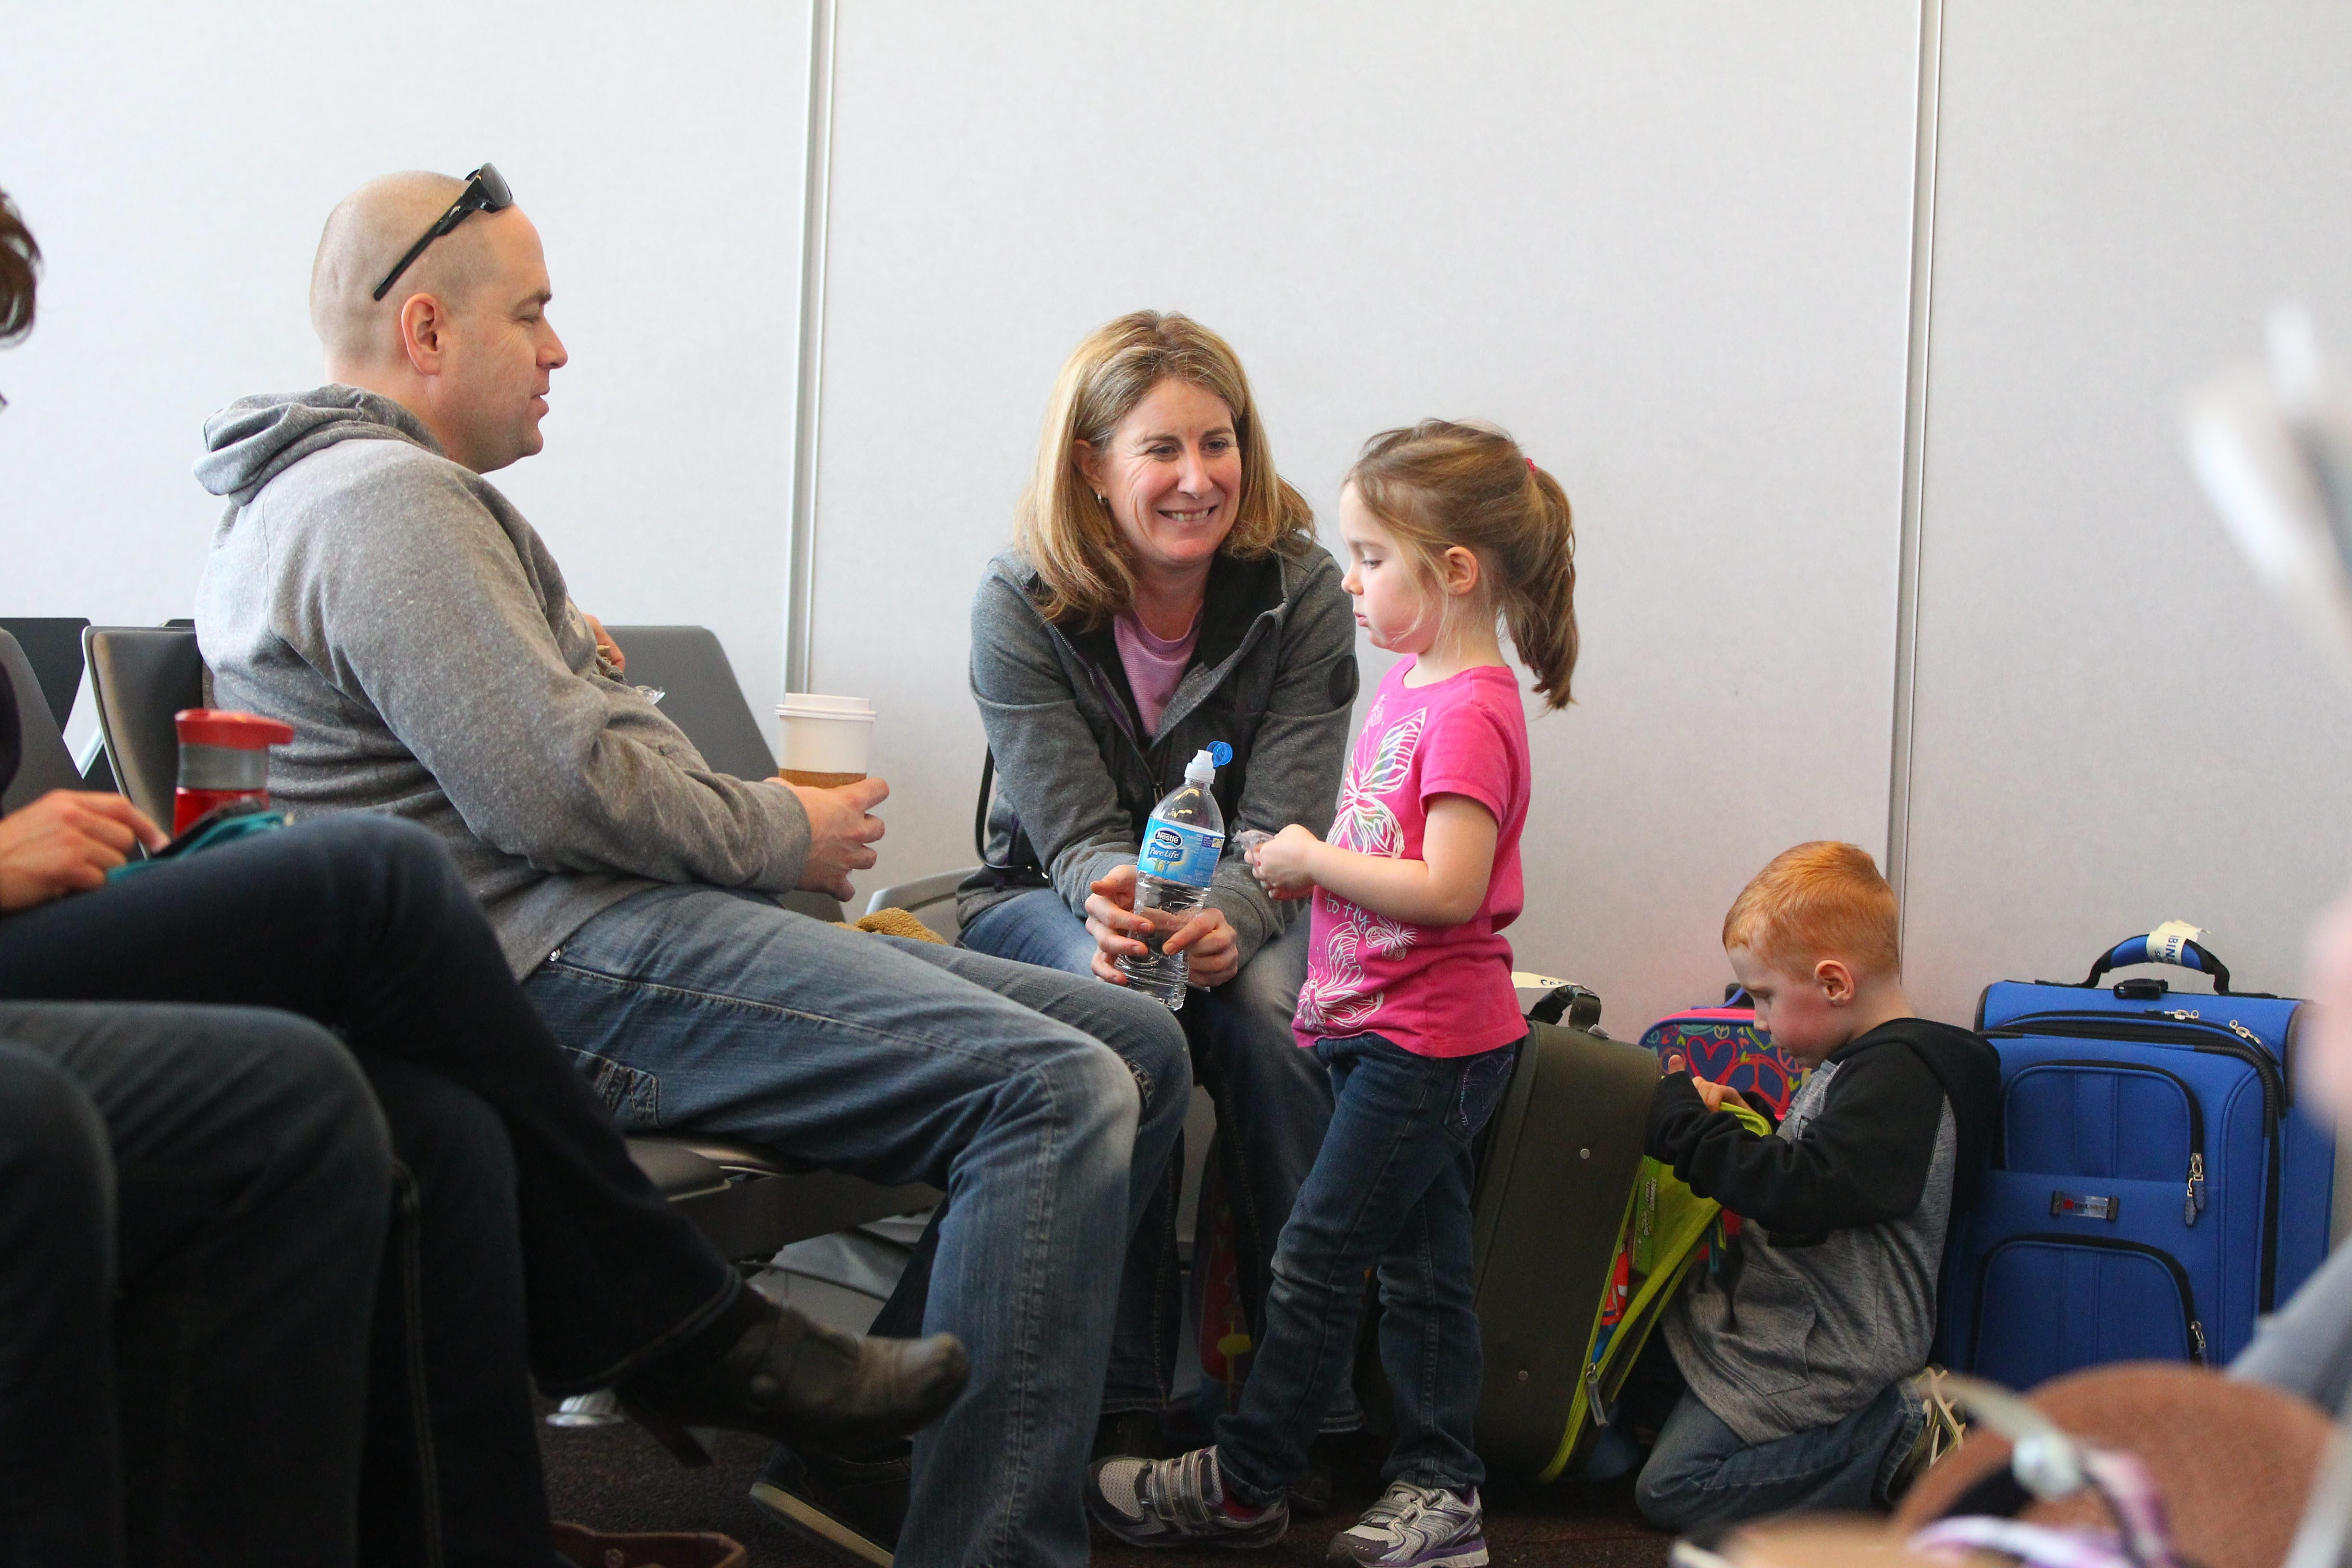 From left, Michael, Nicole, Taylor and Grayson Travale get ready to board a Sunwing flight to Punta Cana on Saturday.